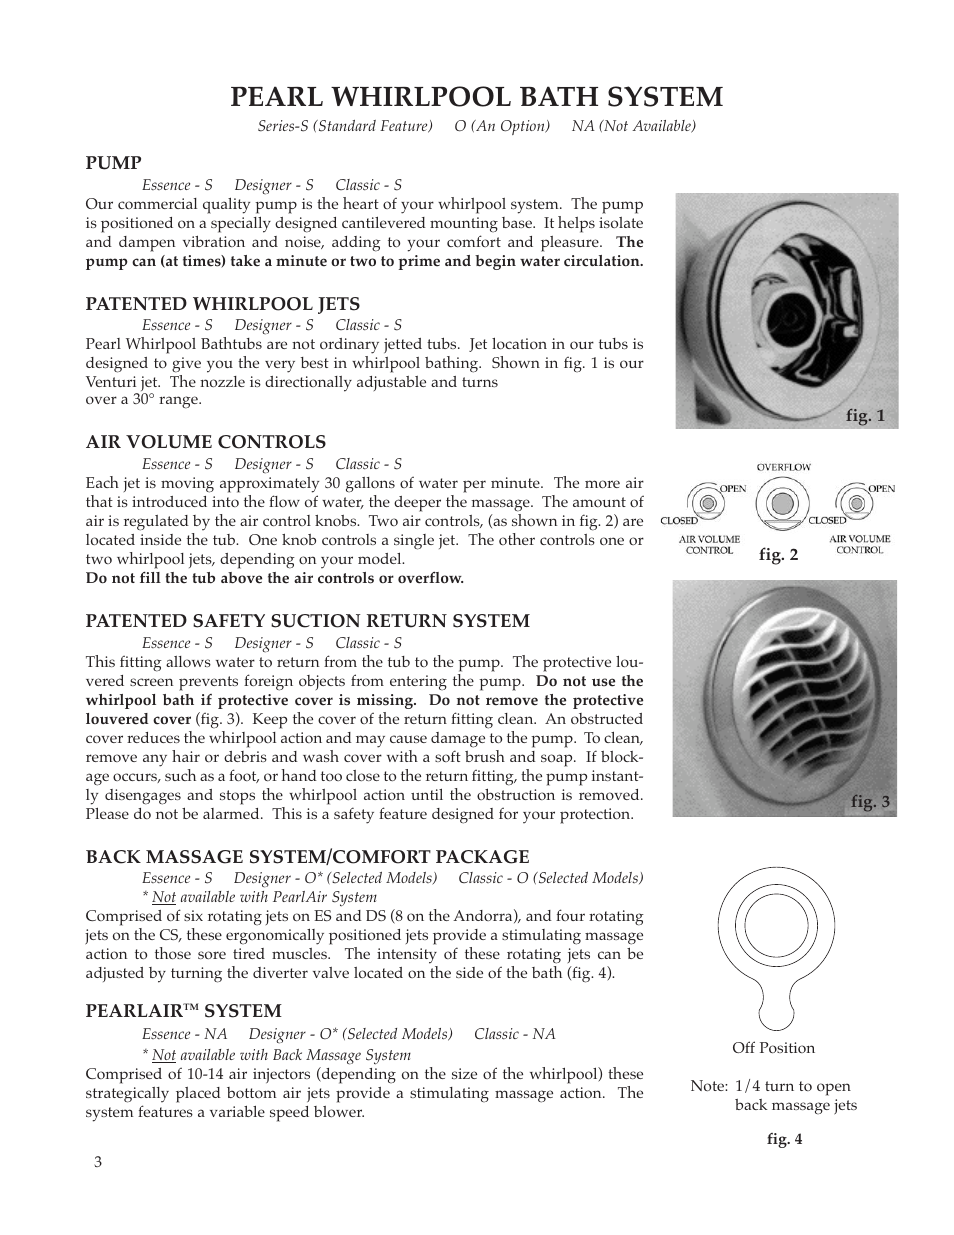 Pearl whirlpool bath system | Whirlpool Maax Pearl Hot Tub User Manual |  Page 4 /